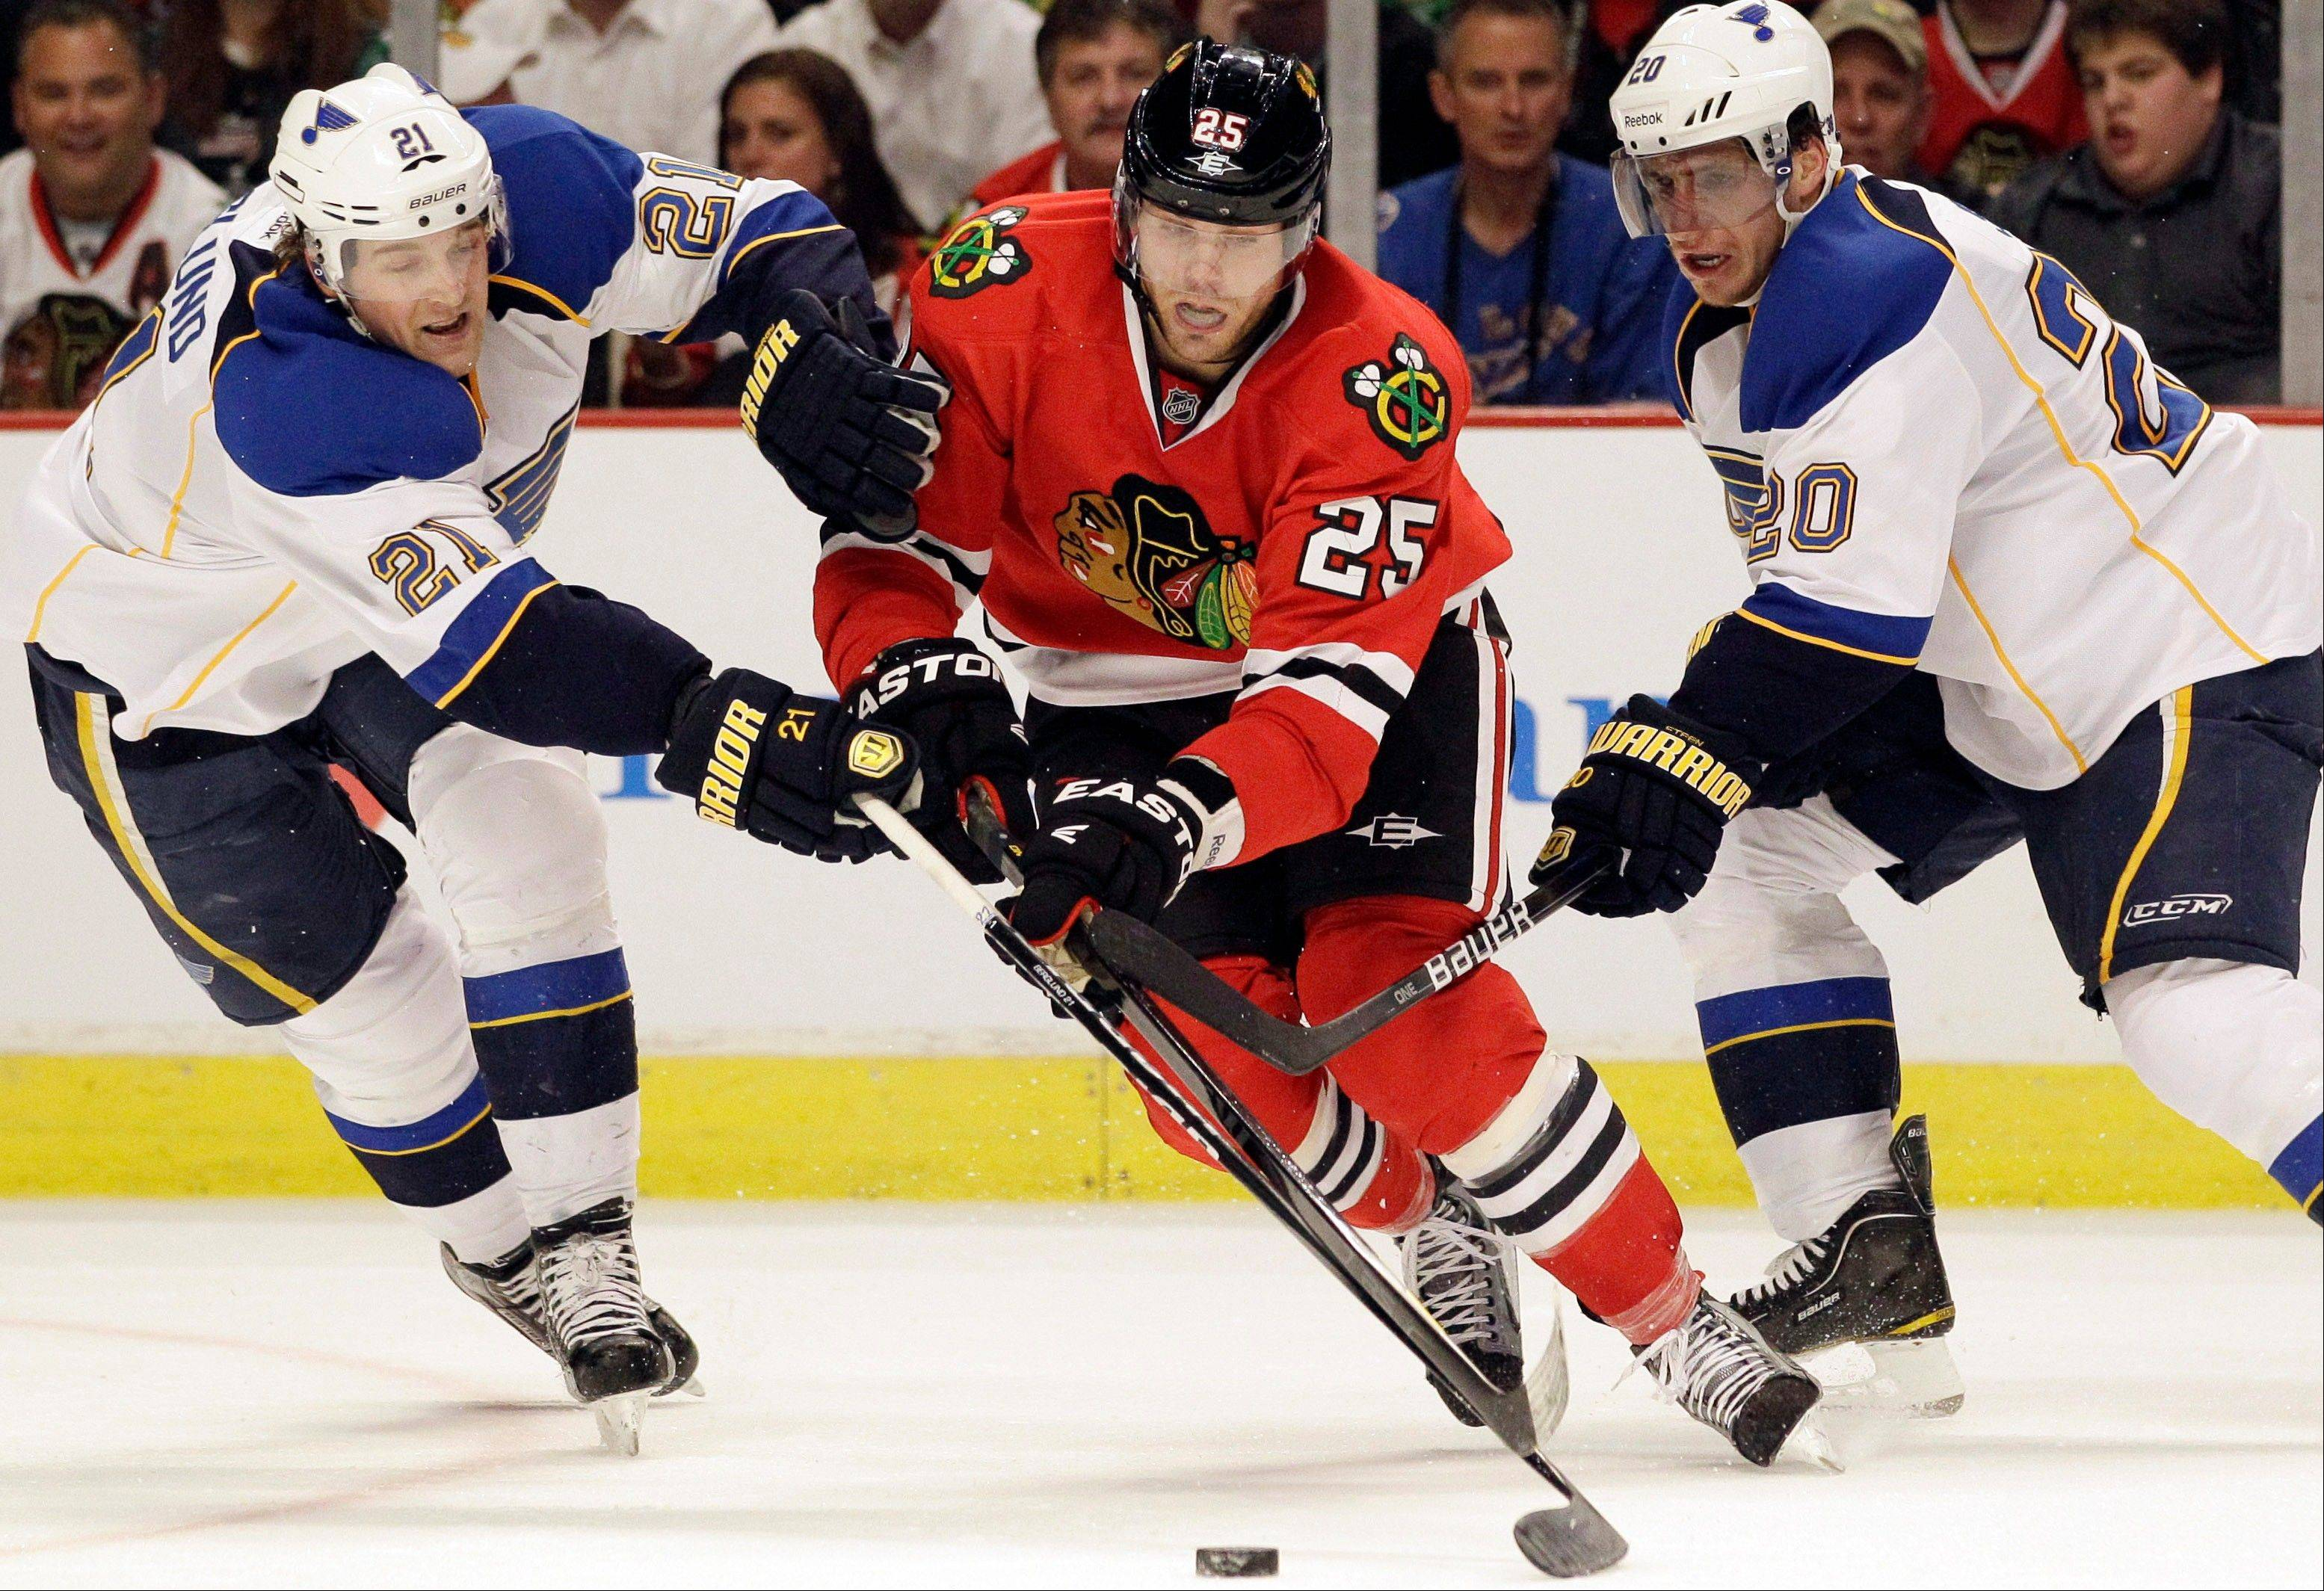 The Blackhawks' Viktor Stalberg works between St. Louis Blues' Patrik Berglund (21) and Alexander Steen (20) Thursday during the second period.